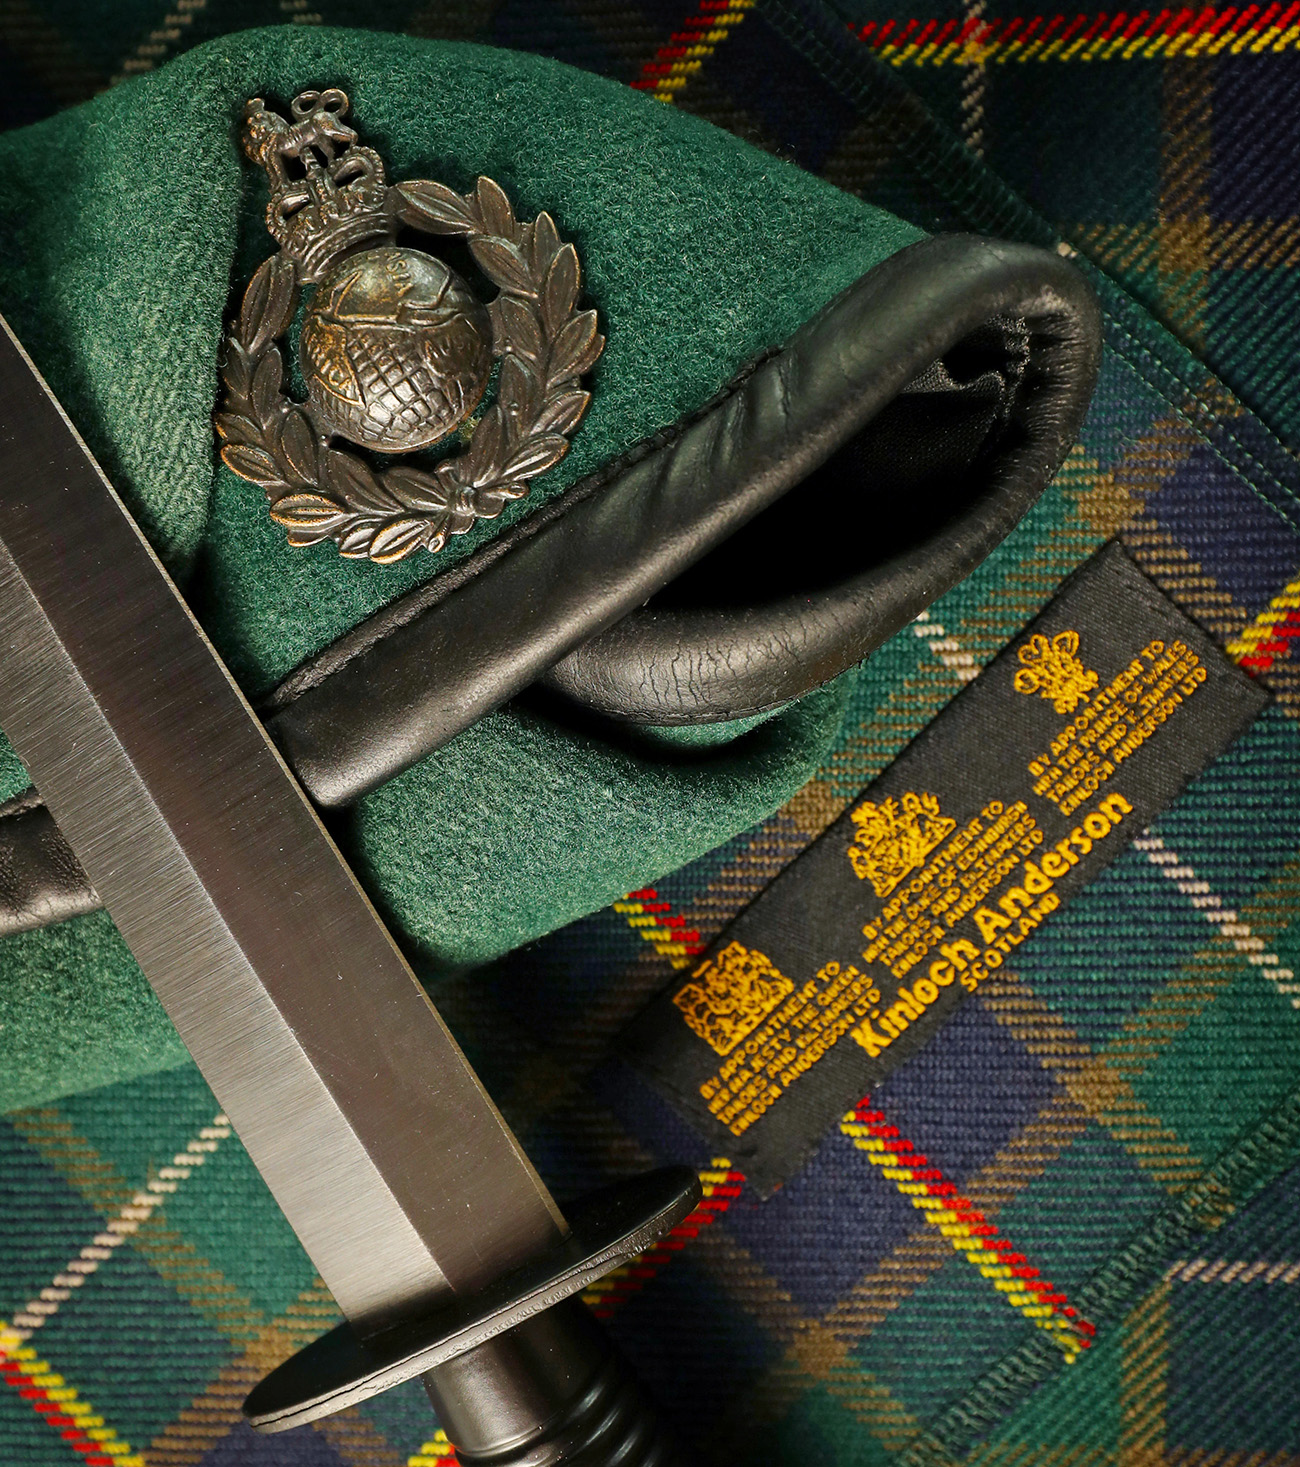 Clyde-based Royal Marines Commandos launch official tartan